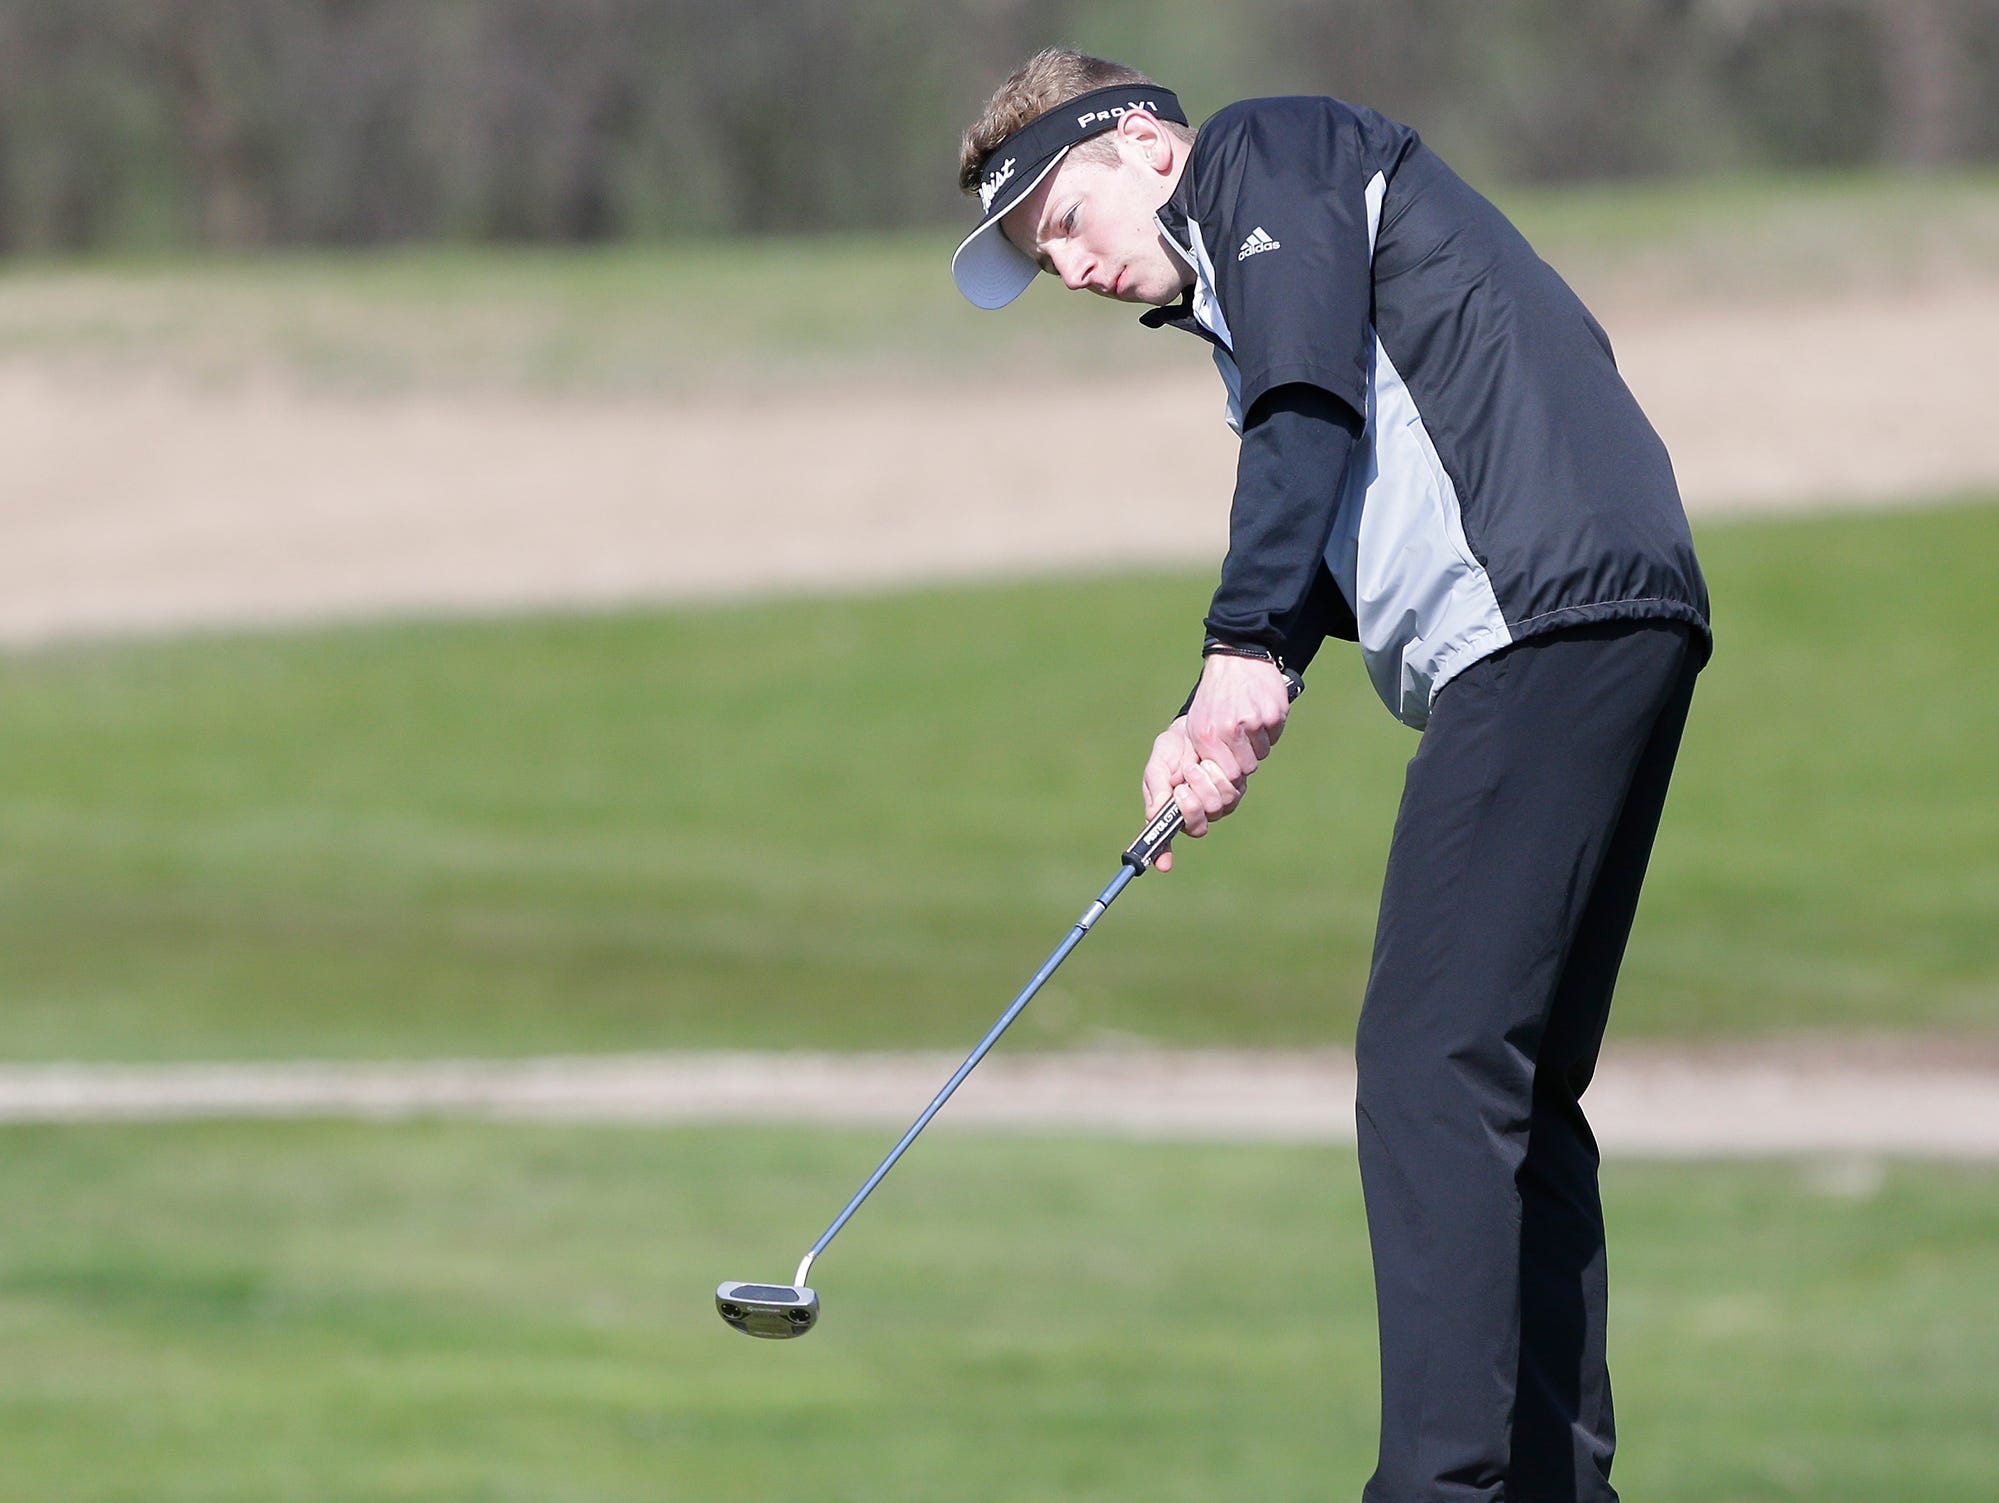 Kyle Kahl of Fond du Lac High School competes in the Fond du Lac High School golf invite Saturday, May 4, 2019 at Rolling Meadows Golf Course in Fond du Lac, Wis. Doug Raflik/USA TODAY NETWORK-Wisconsin